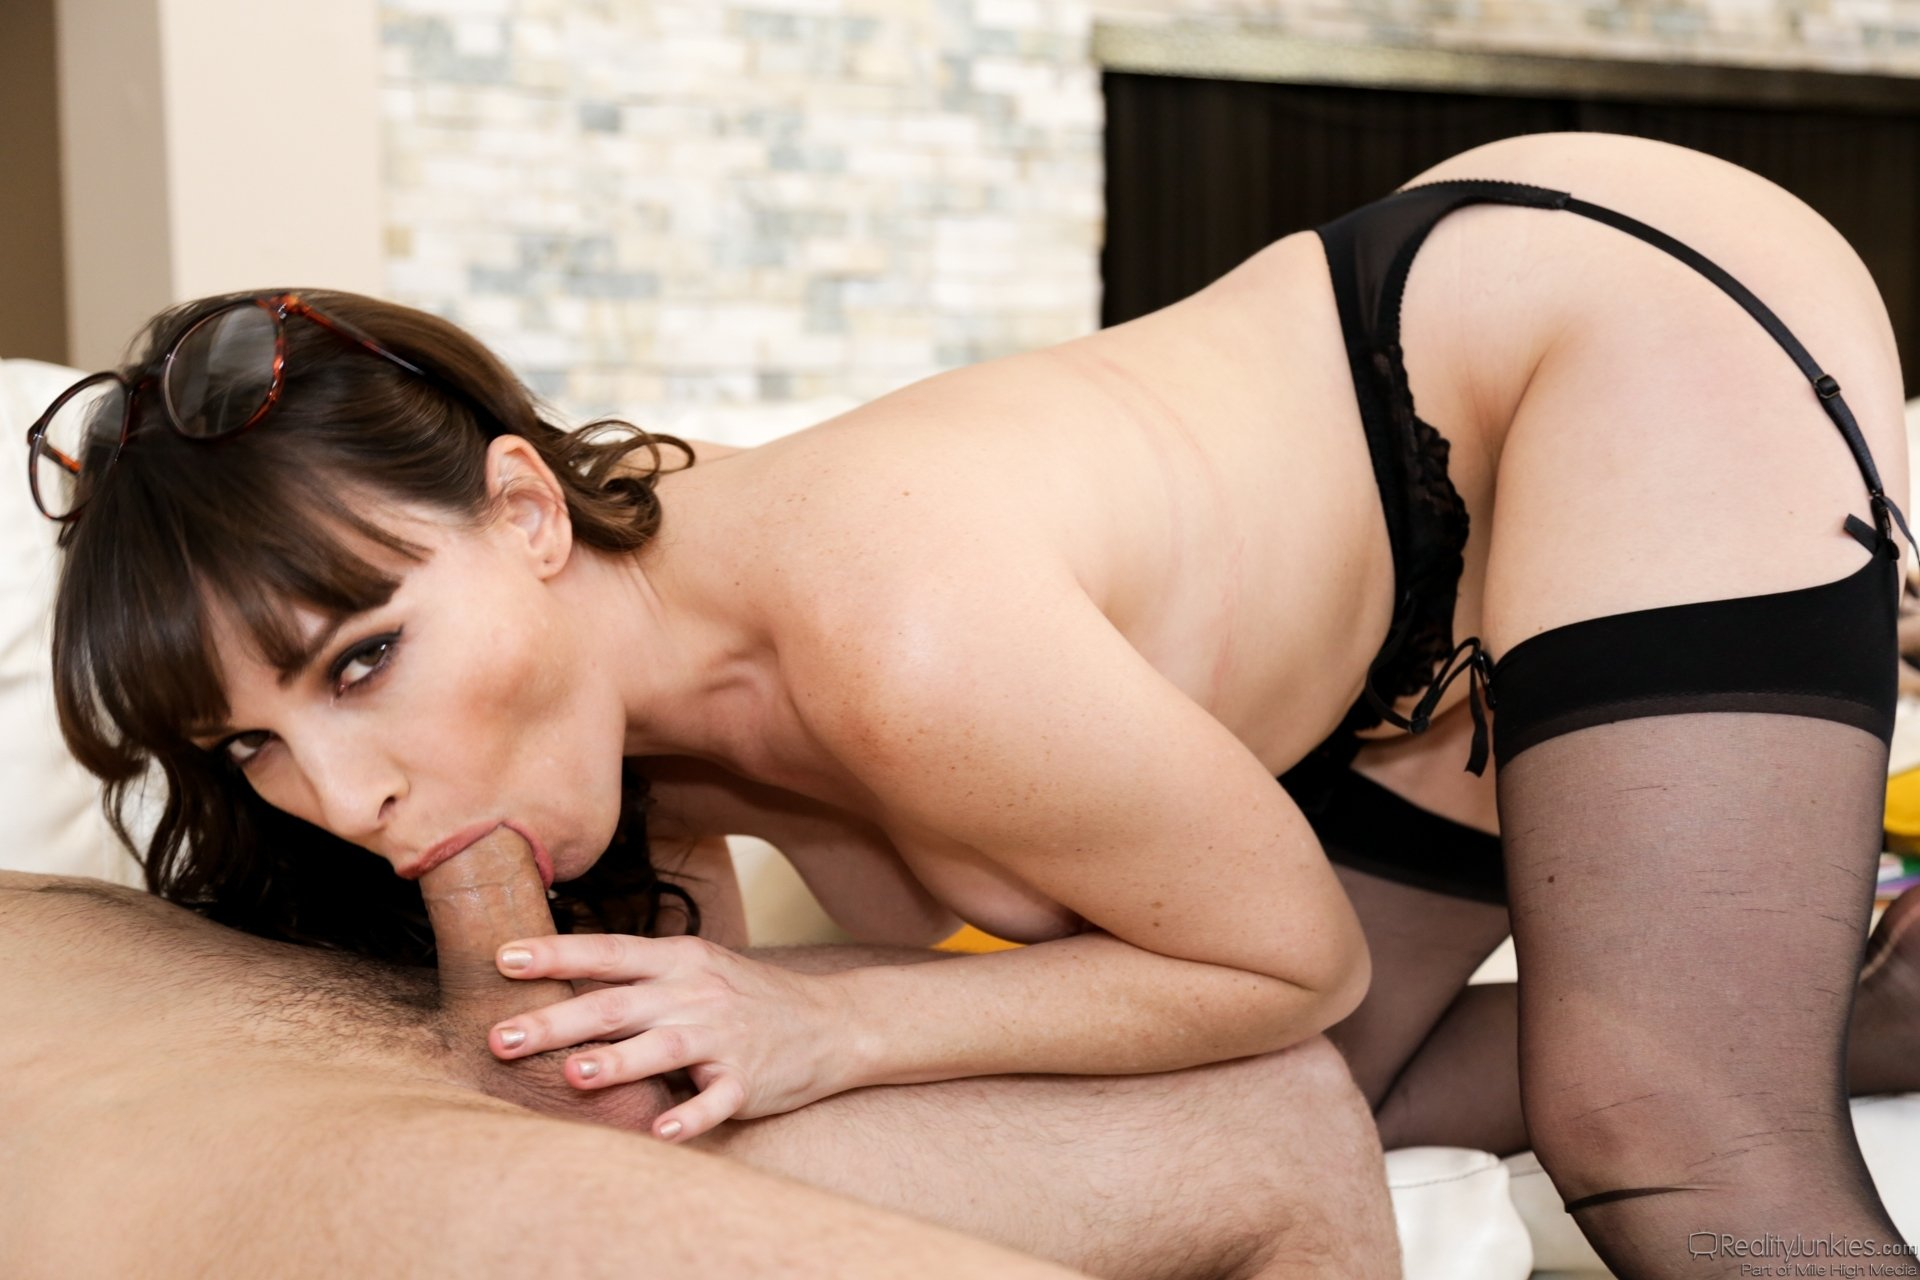 Seal pack chut full hd Small wife taxi